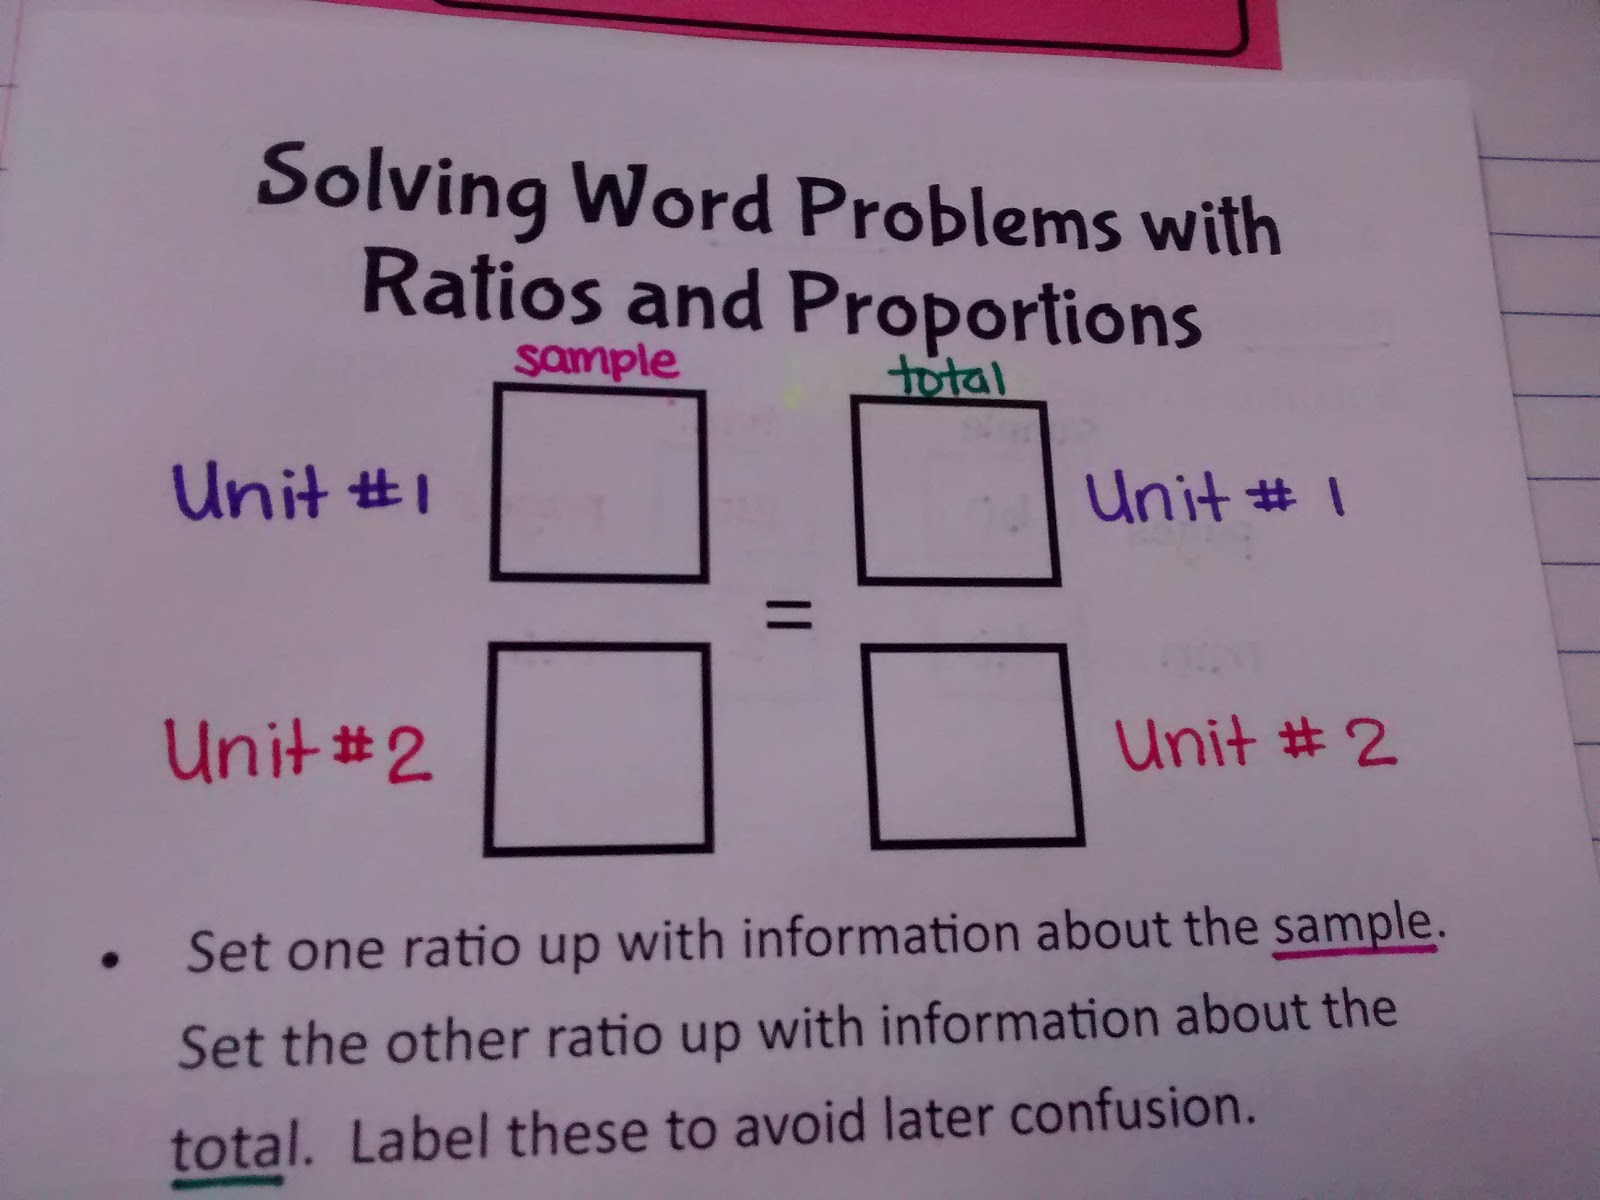 math worksheet : math u003d love solving word problems with ratios and proportions : Ratio Proportion Word Problems